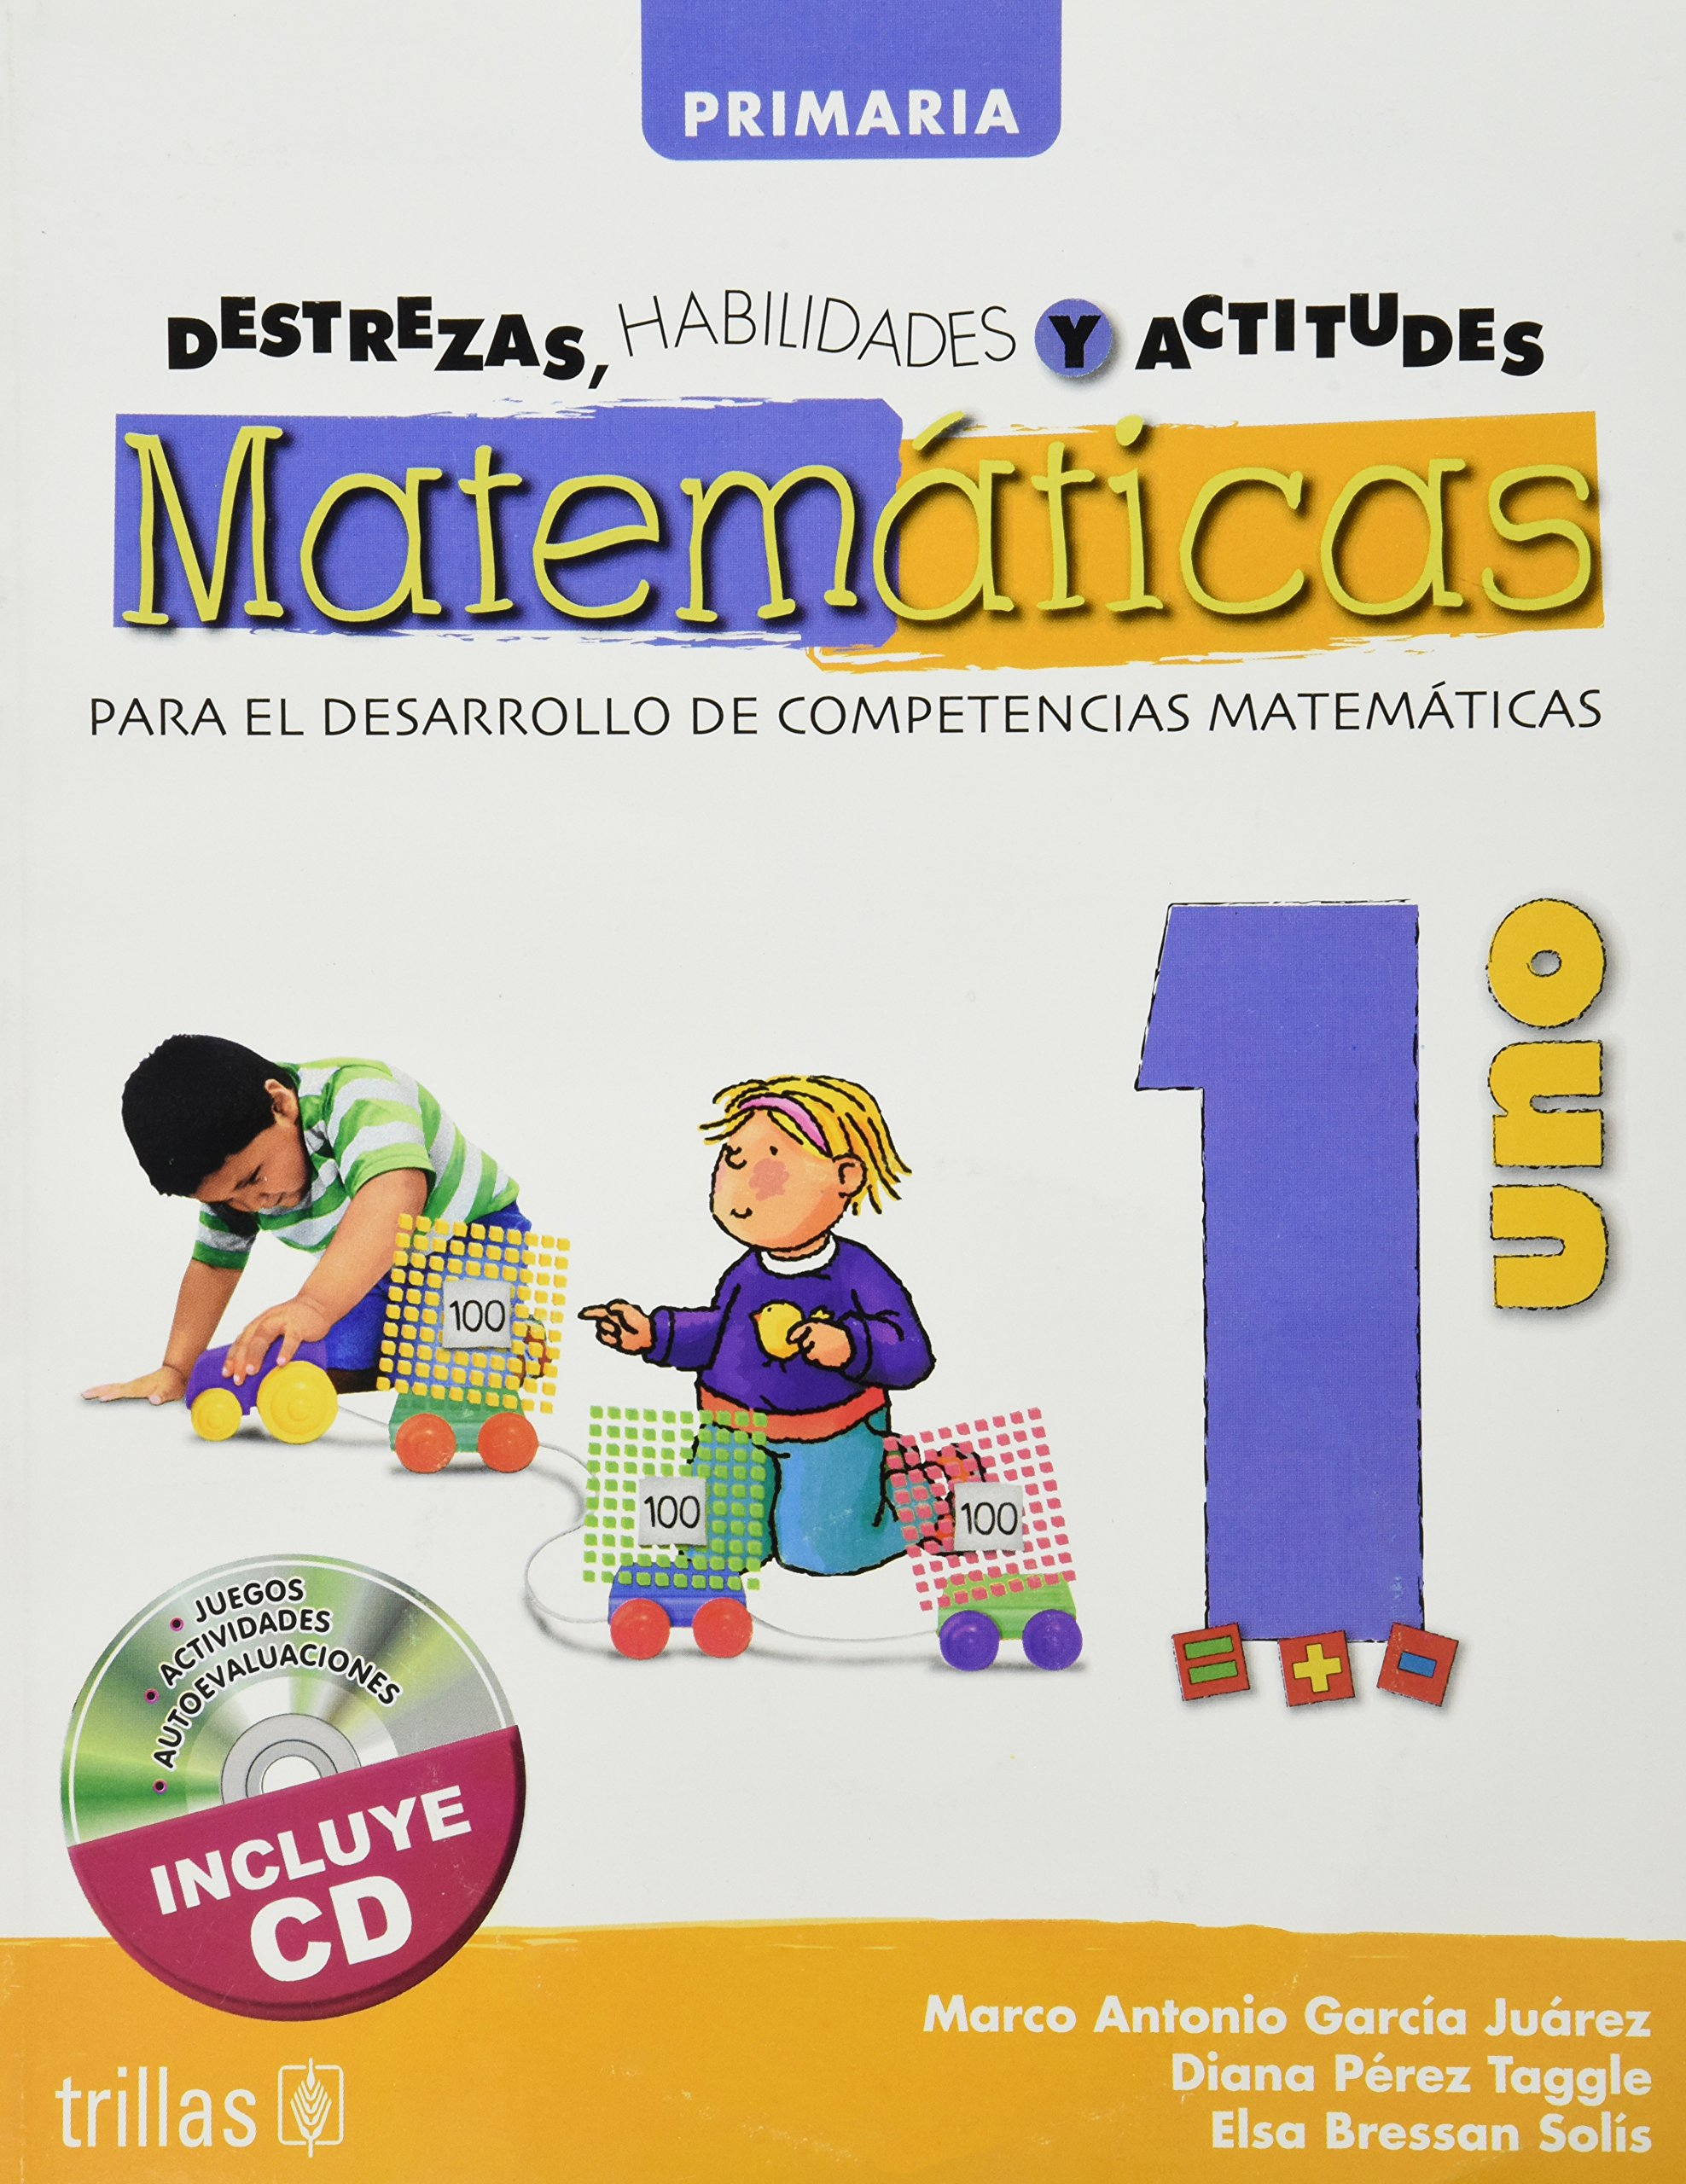 Destrezas, habilidades y actitudes matematicas / Math Skills, Abilities and Attitudes: Para el desarrollo de competencias matematicas / For the Development of Mathematical Skills (Spanish Edition) pdf epub